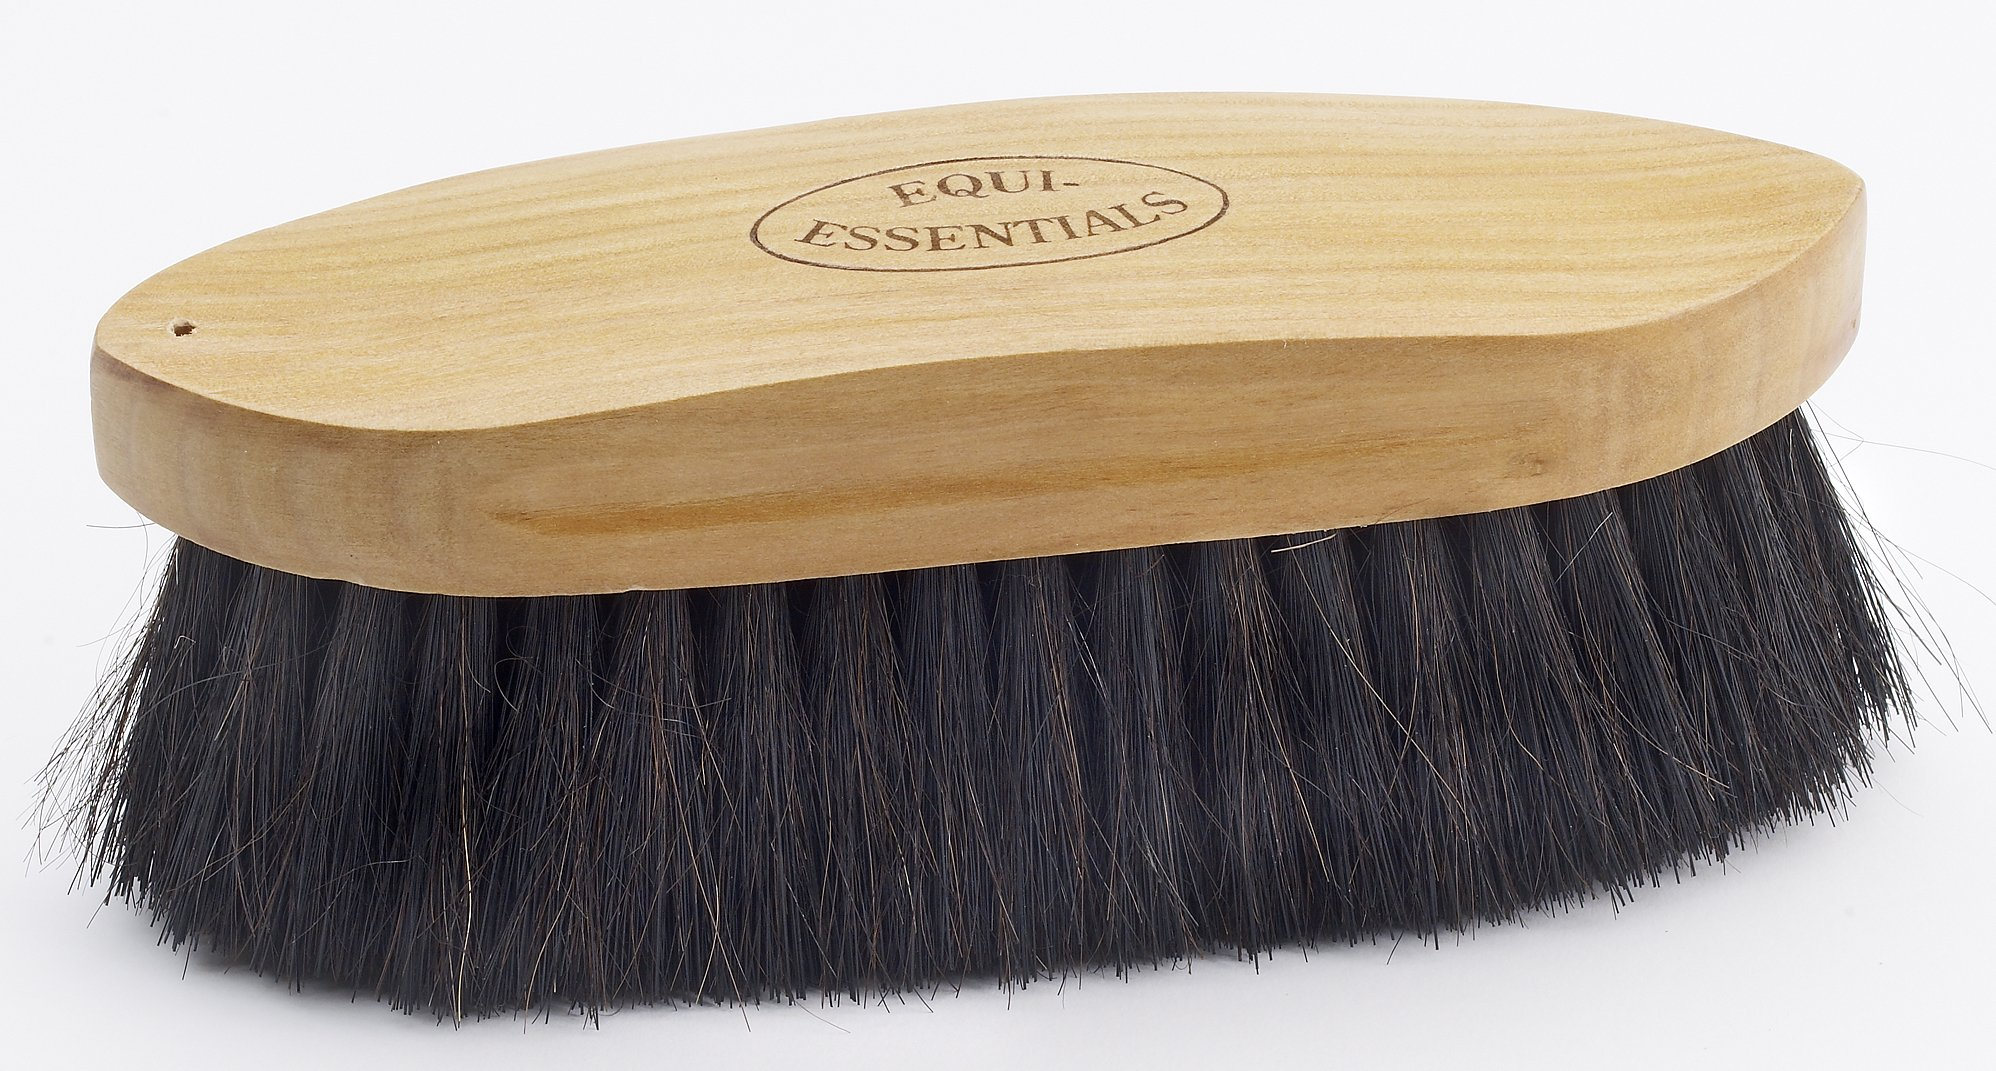 Equi-Essentials Wood Backed Horsehair Dandy Brush - Size:Large 8'' Color:Natural